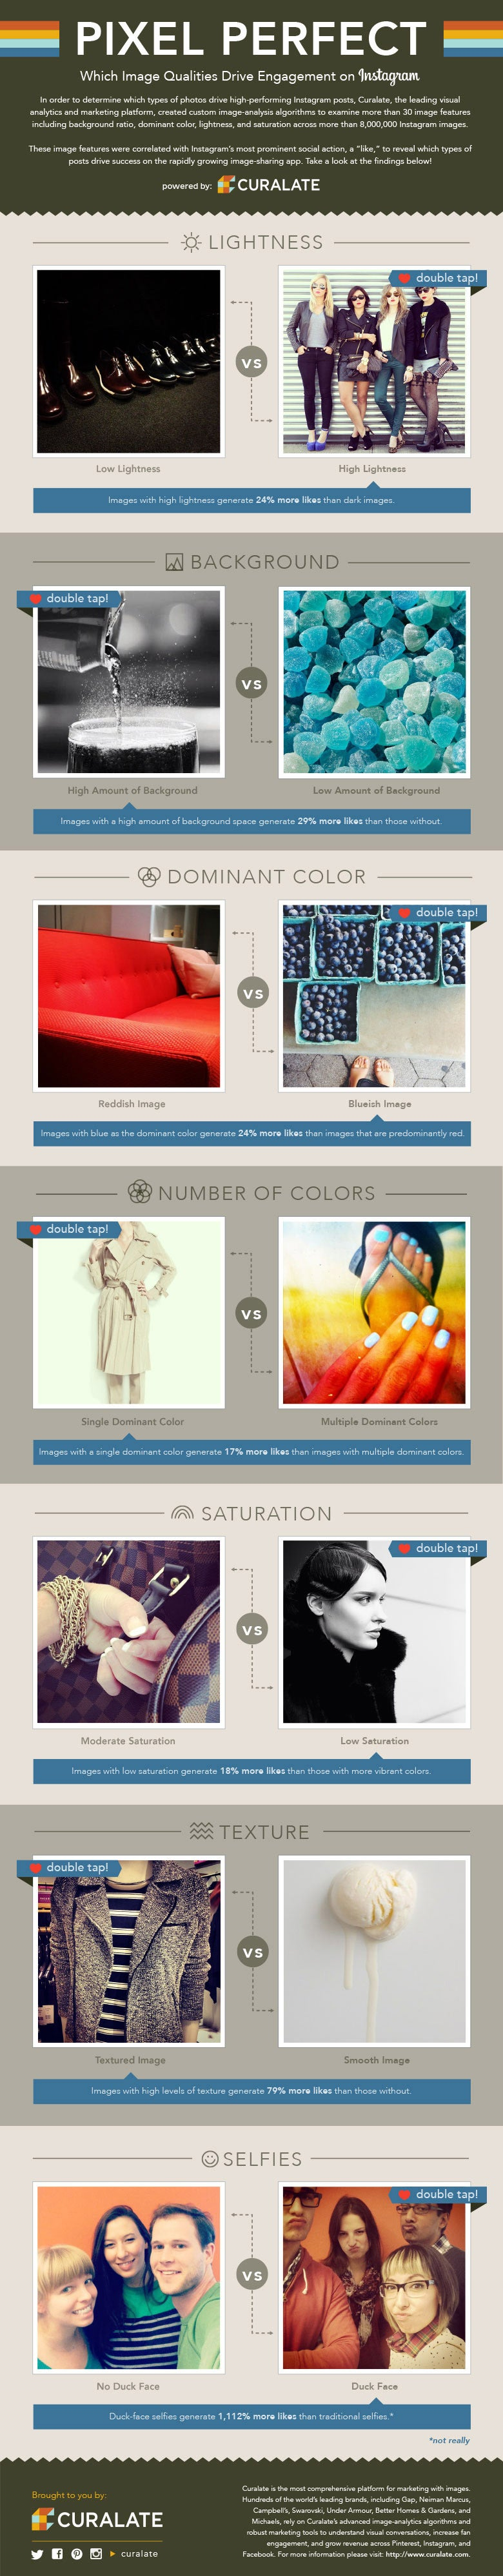 Instagram Success: These Types of Images Drive the Most Engagement (Infographic)